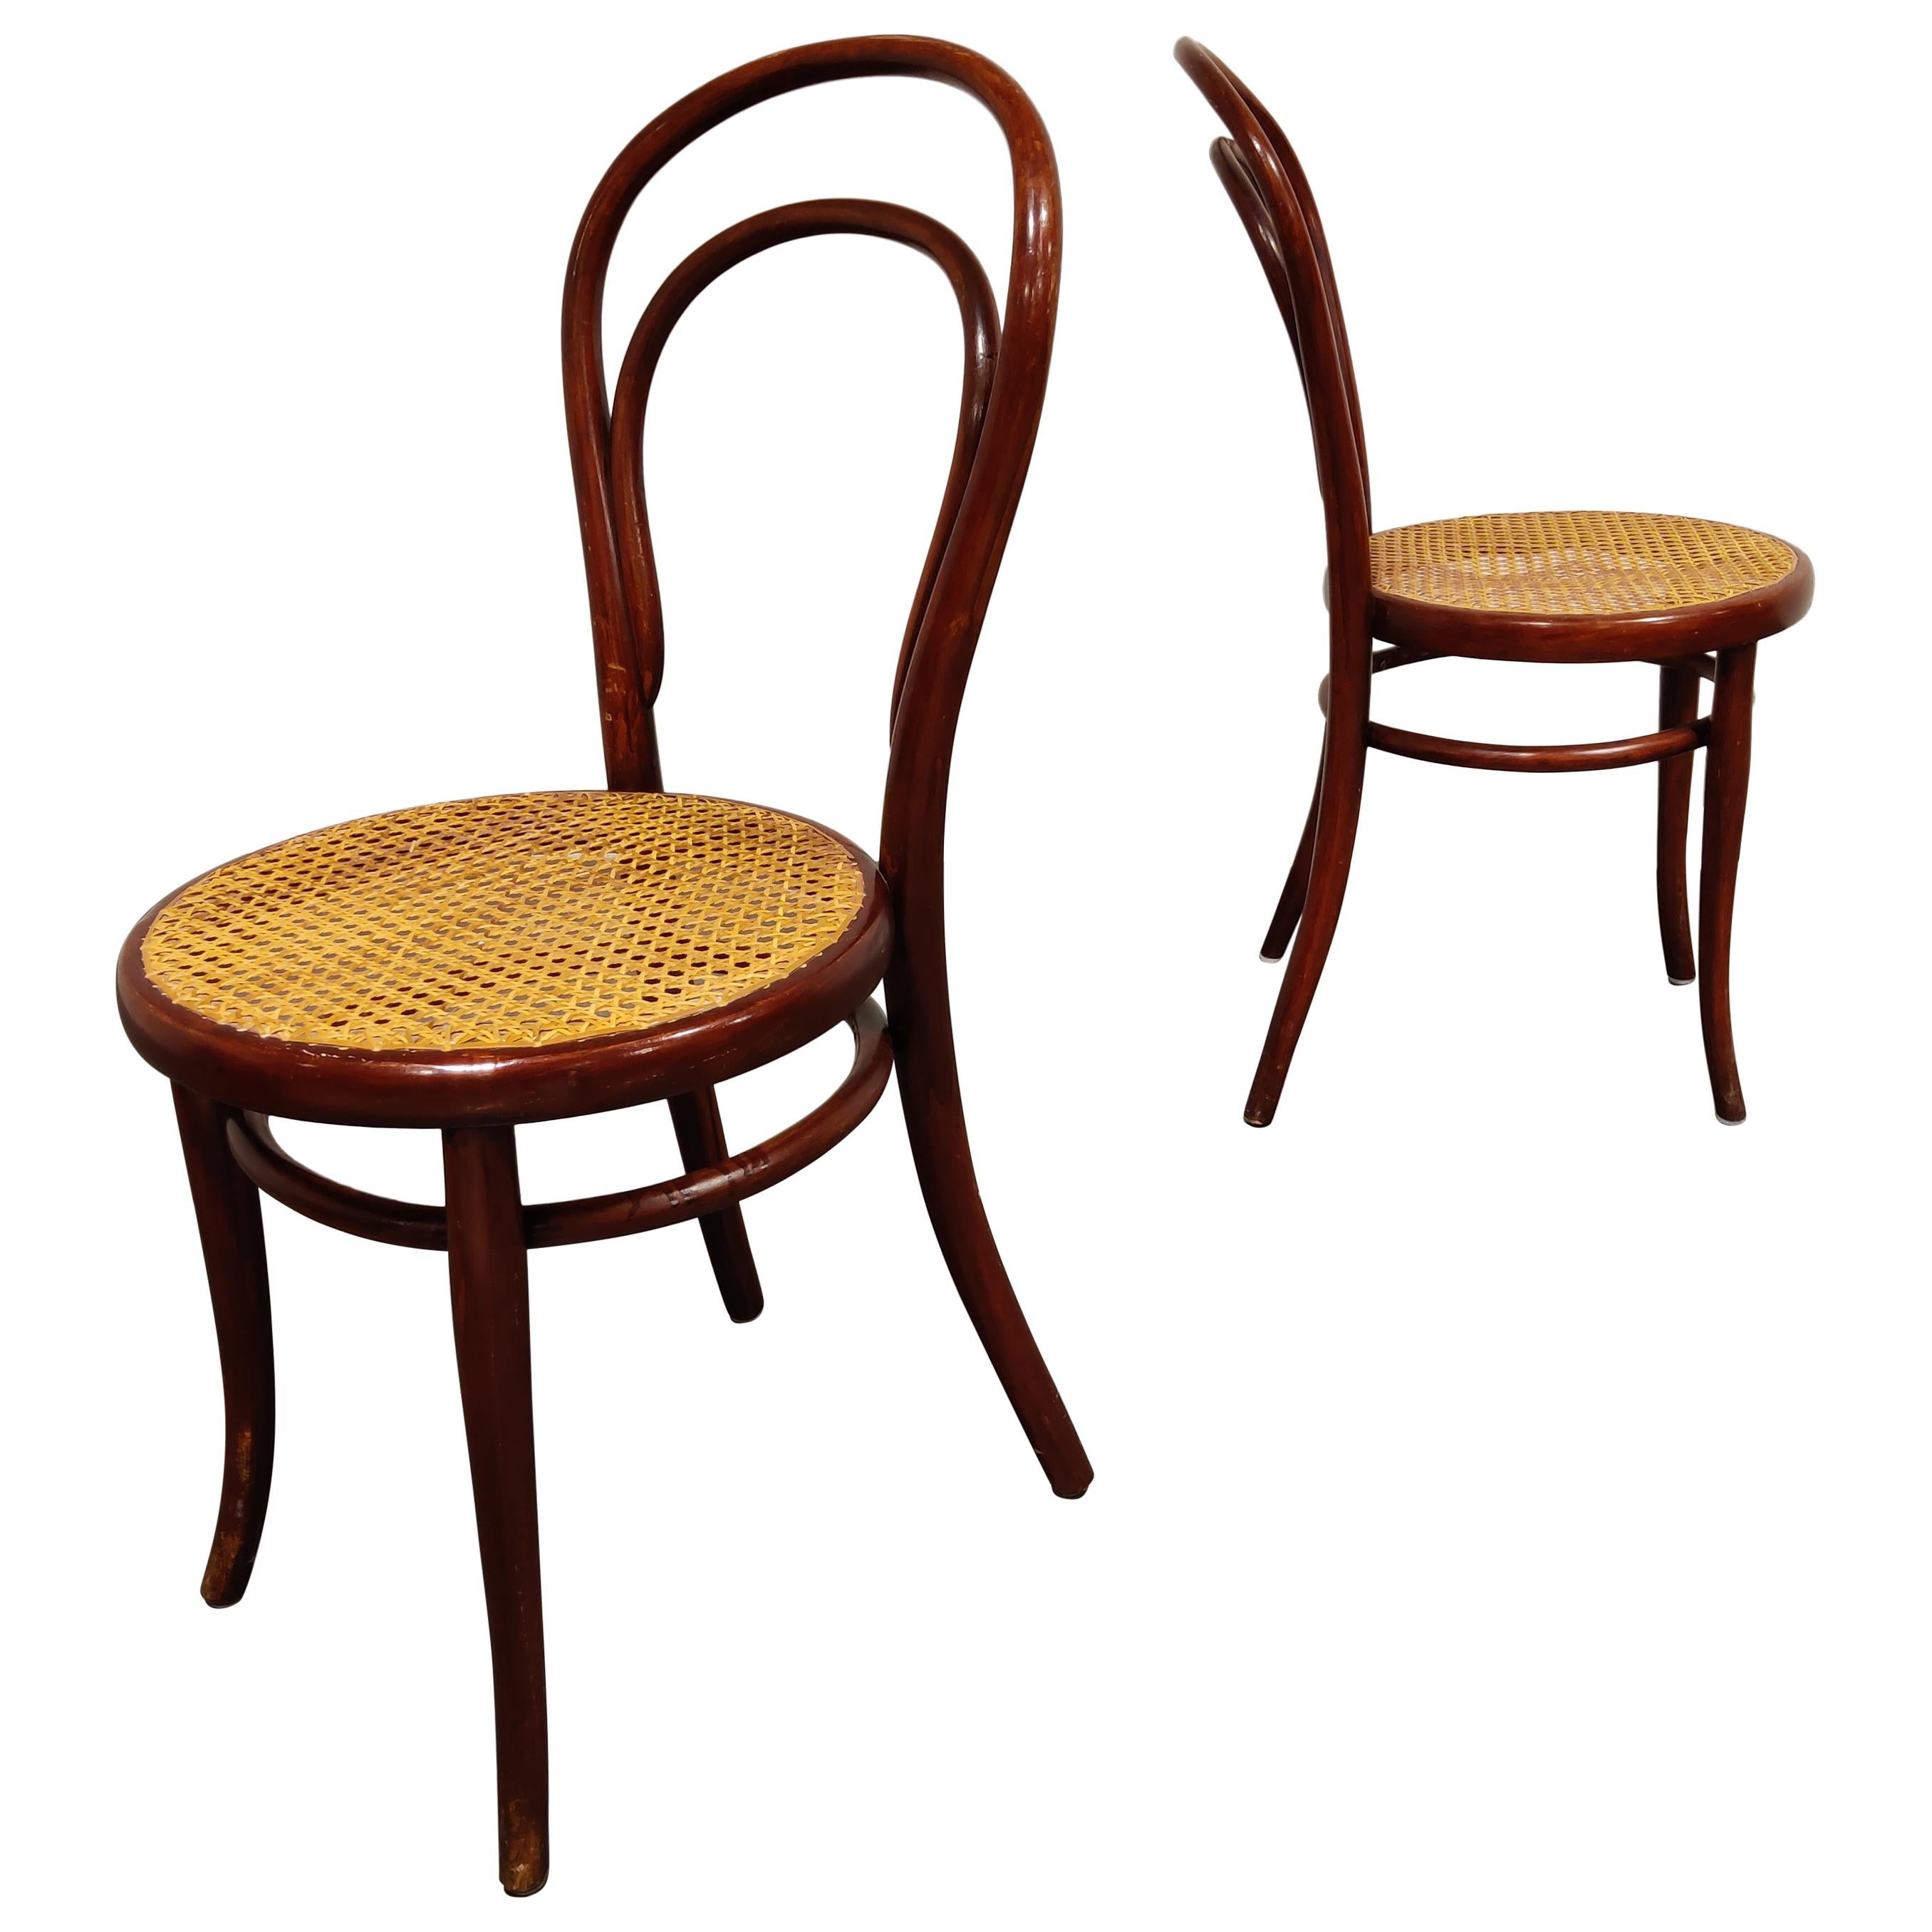 Pair of Antique Thonet Dining Chairs, 1950s